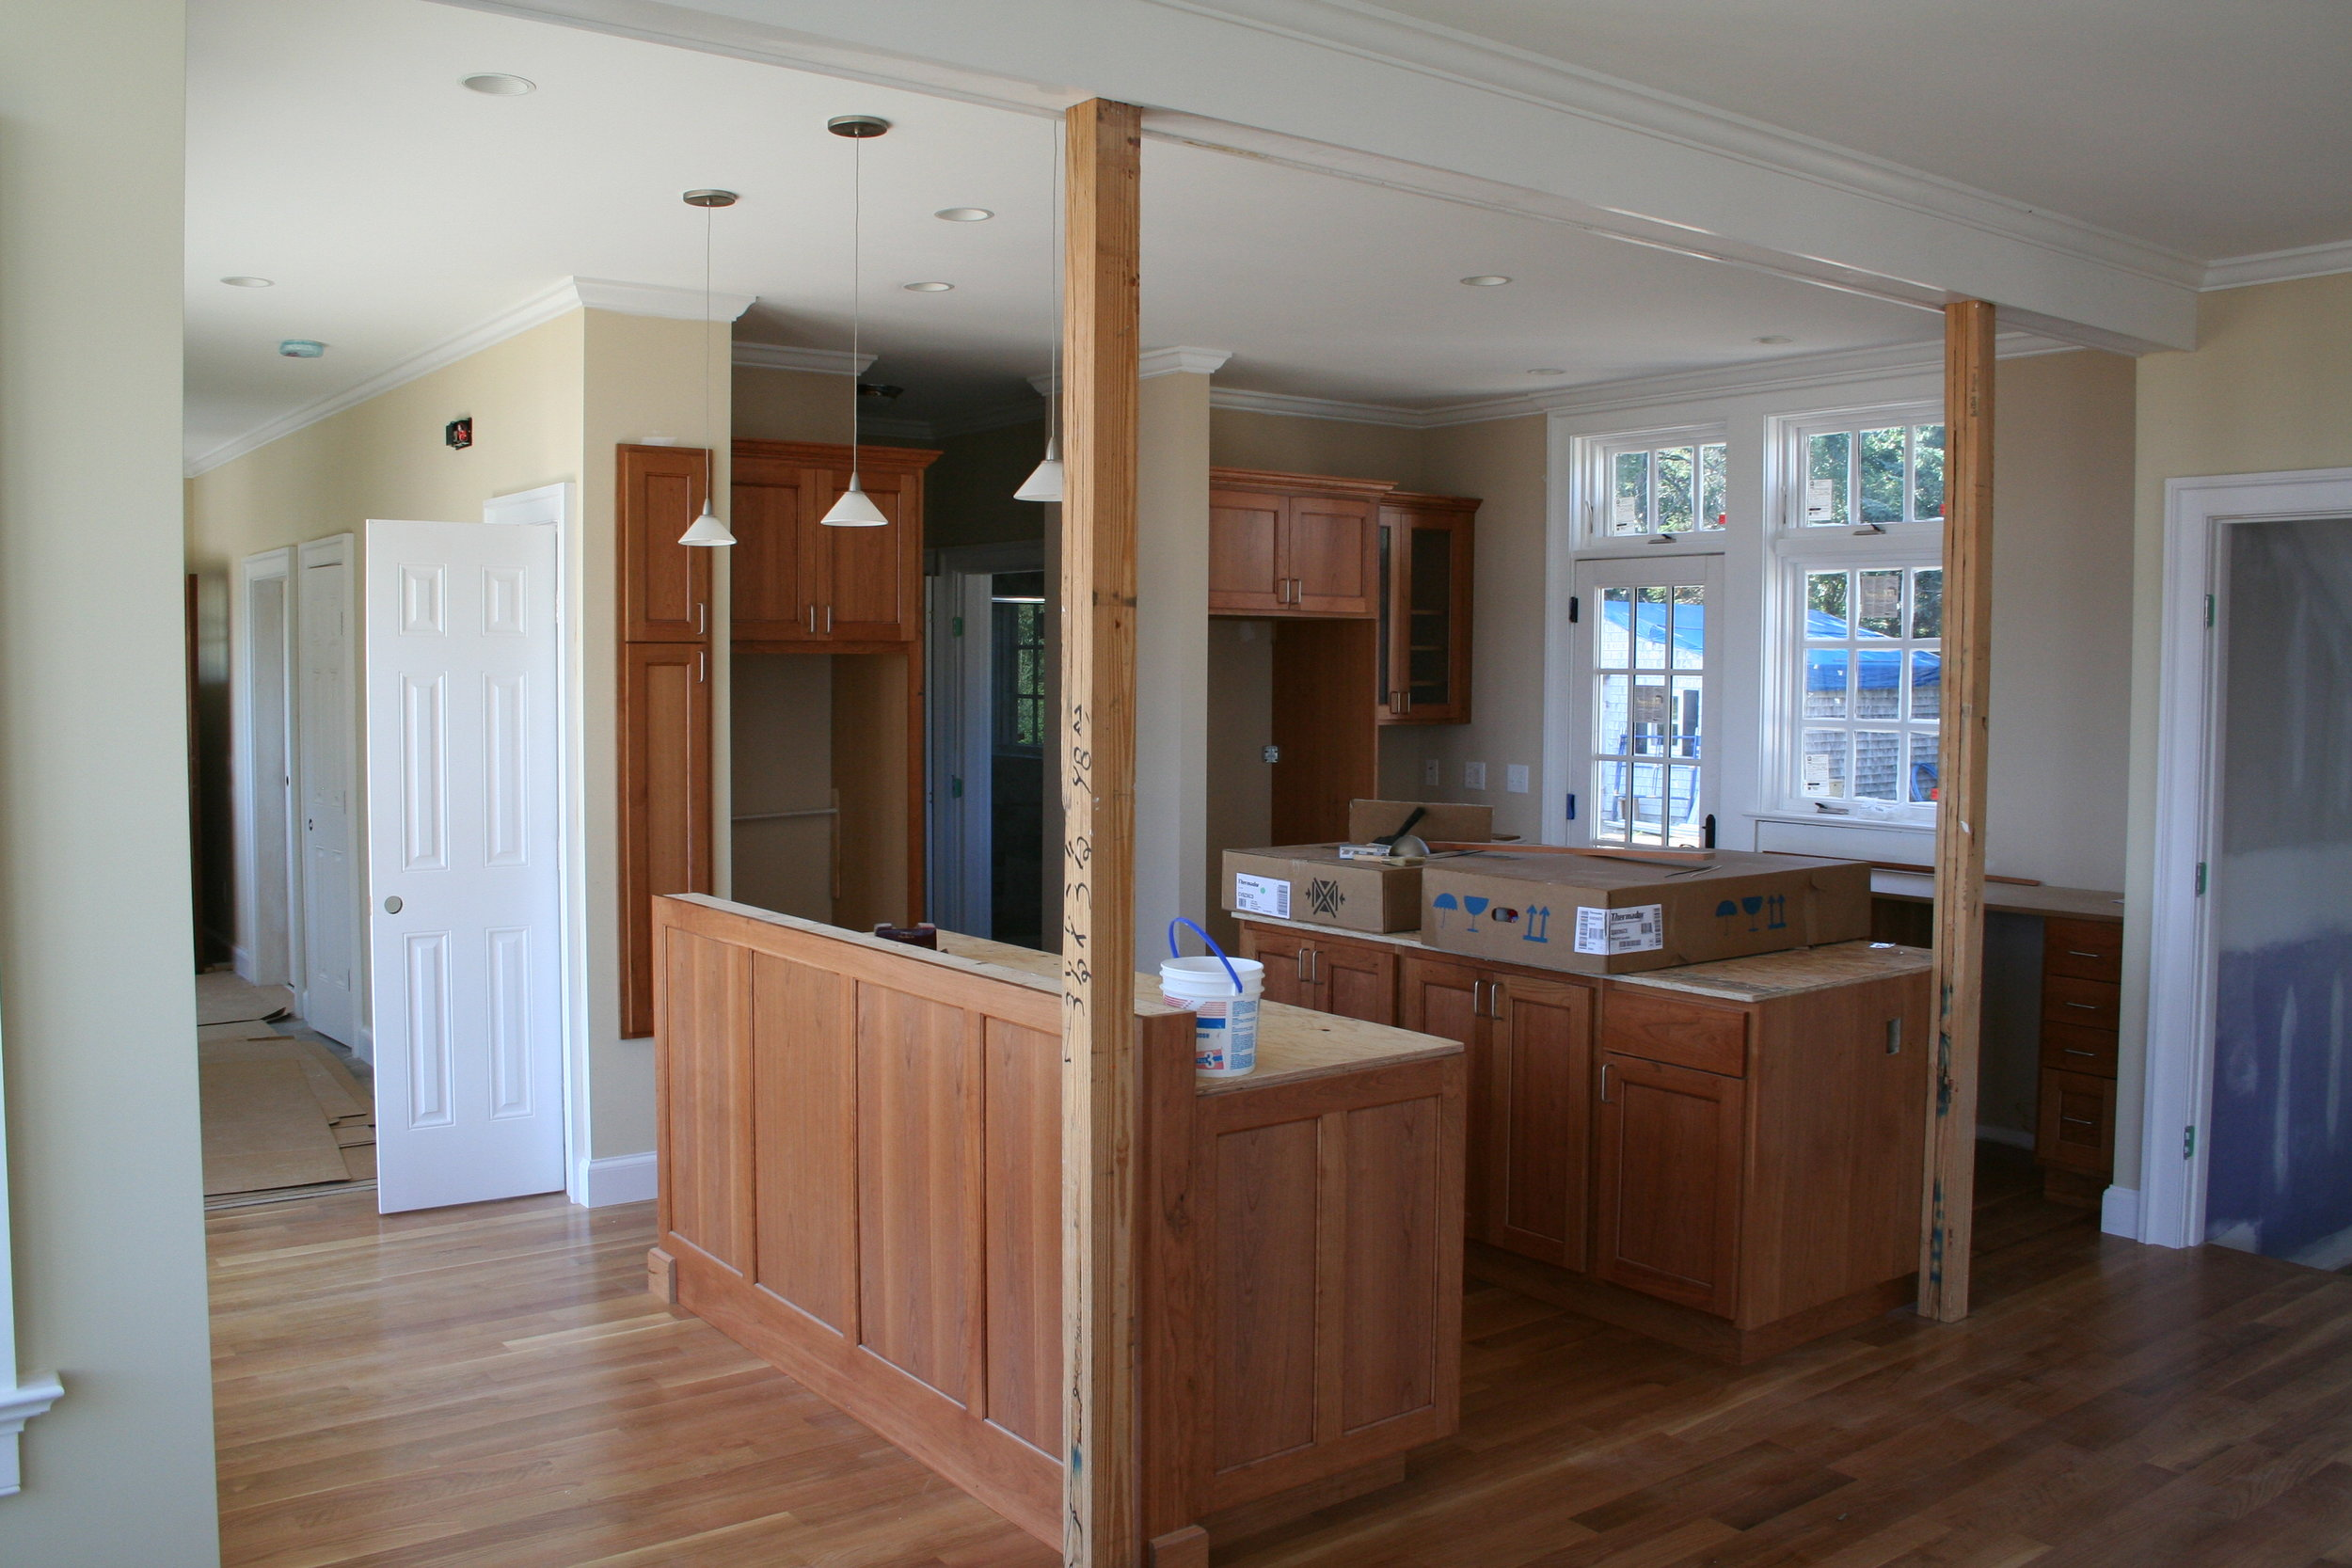 Another kitchen nearing completion. Cherry cabinets, quarter sawn white oak flooring.